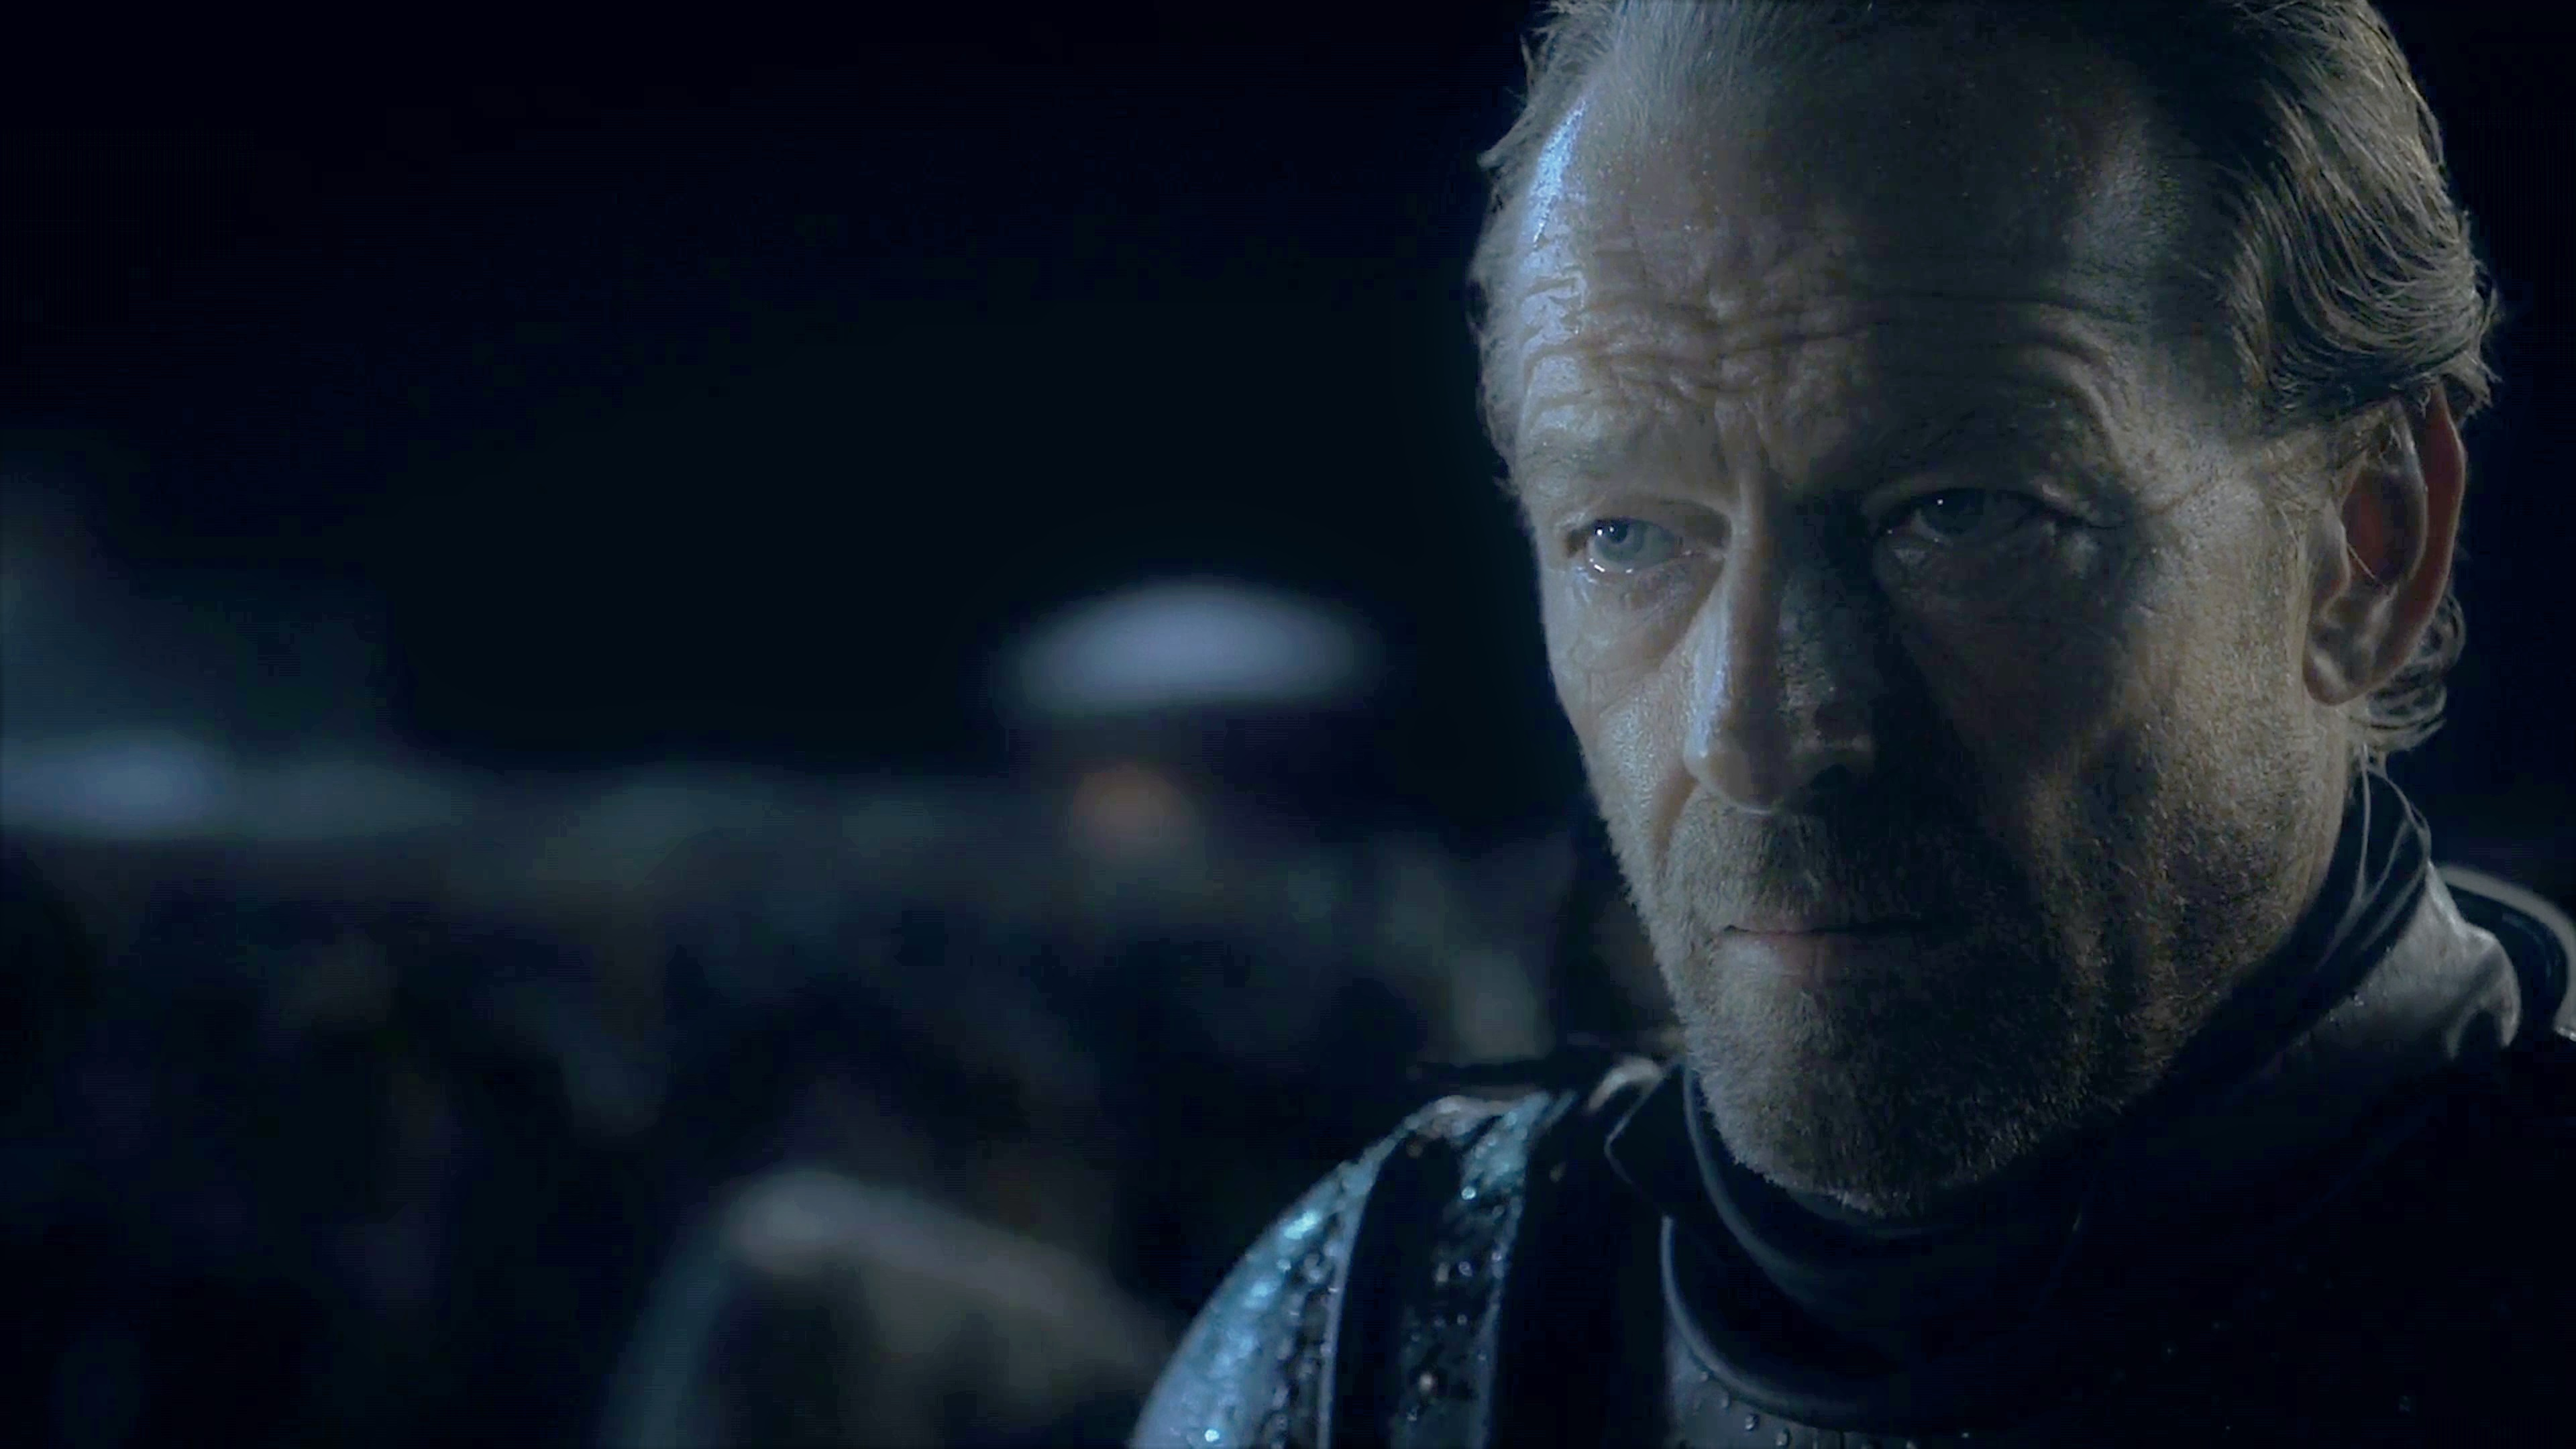 47. Season 8 Trailer Jorah Mormont Winterfell Battle